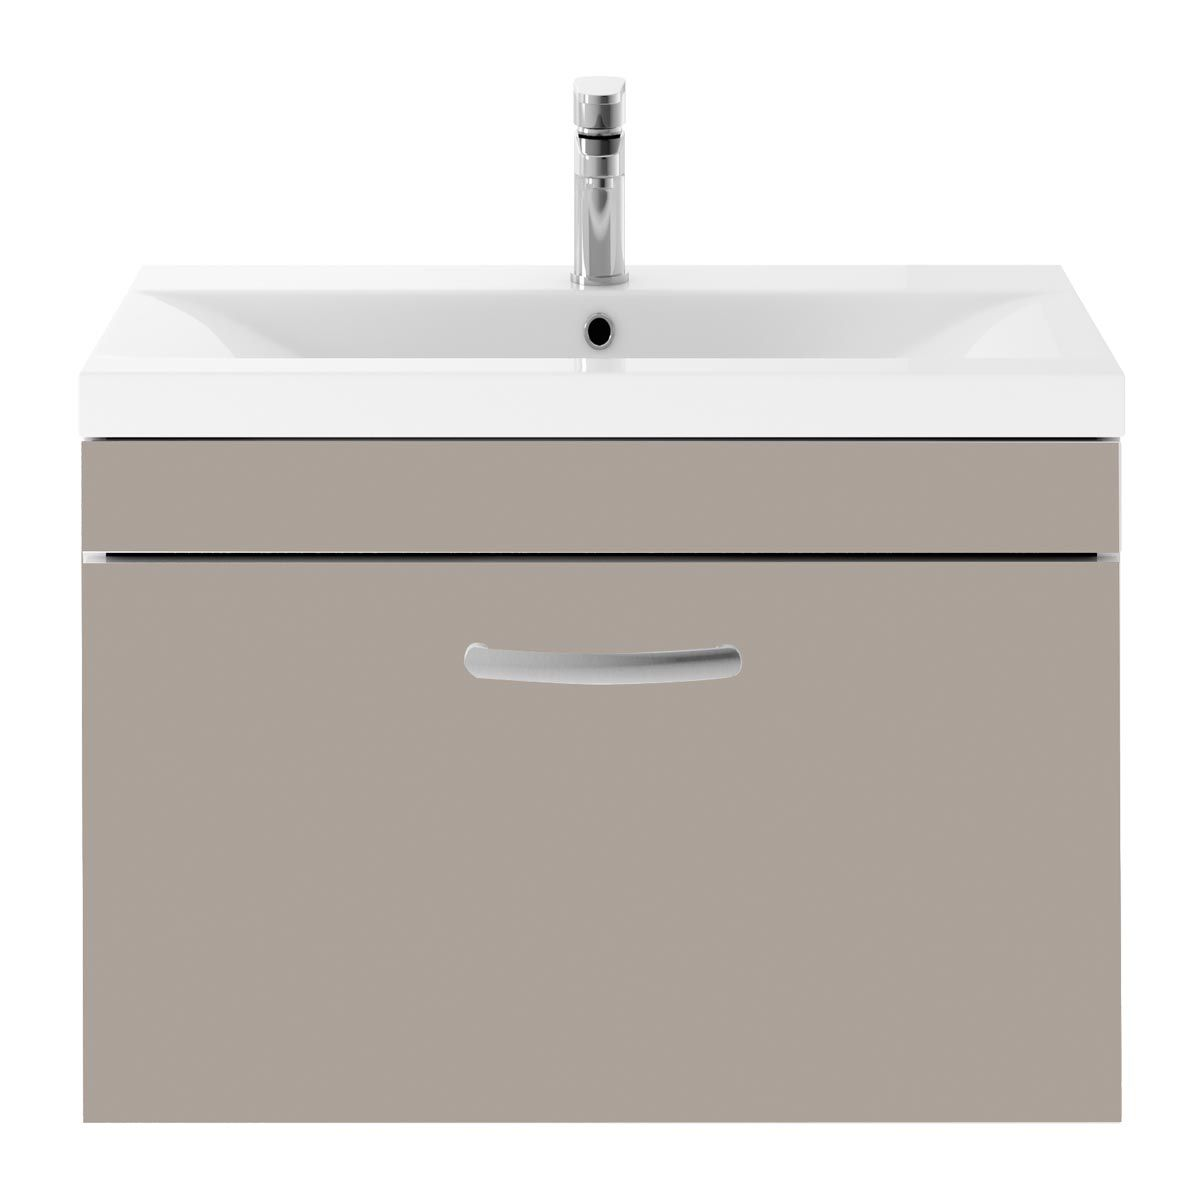 Nuie Athena Stone Grey 1 Drawer Wall Hung Vanity Unit with 40mm Profile Basin 800mm